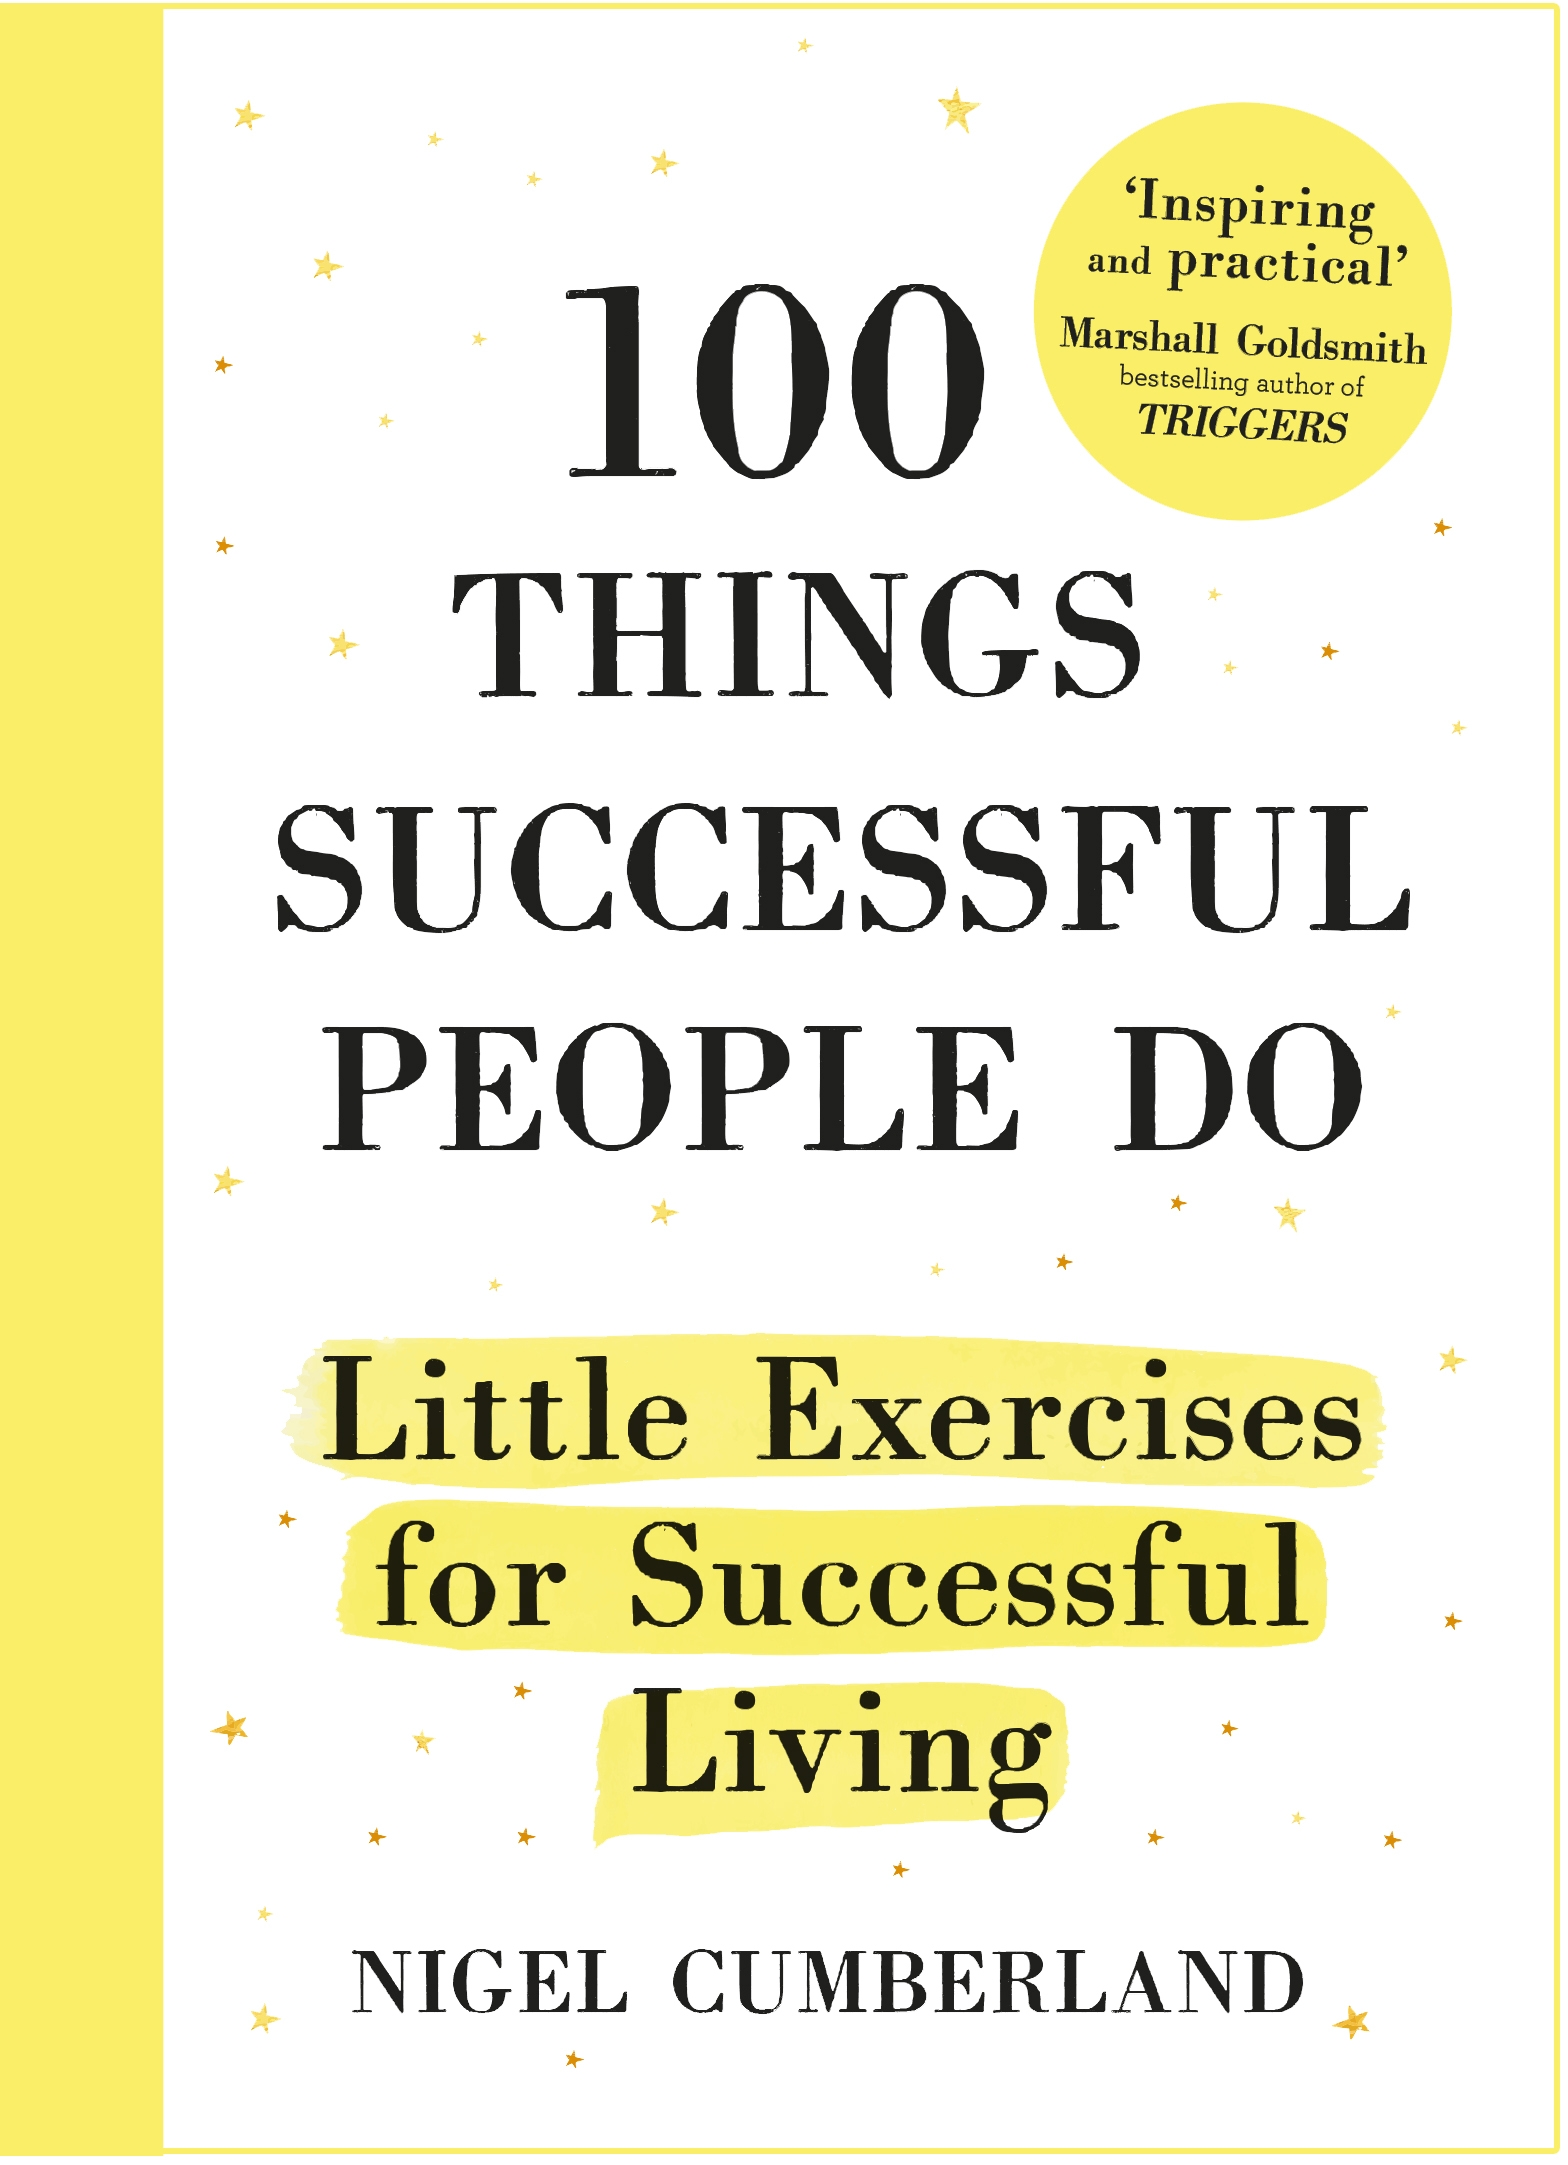 100 Things front cover.jpg